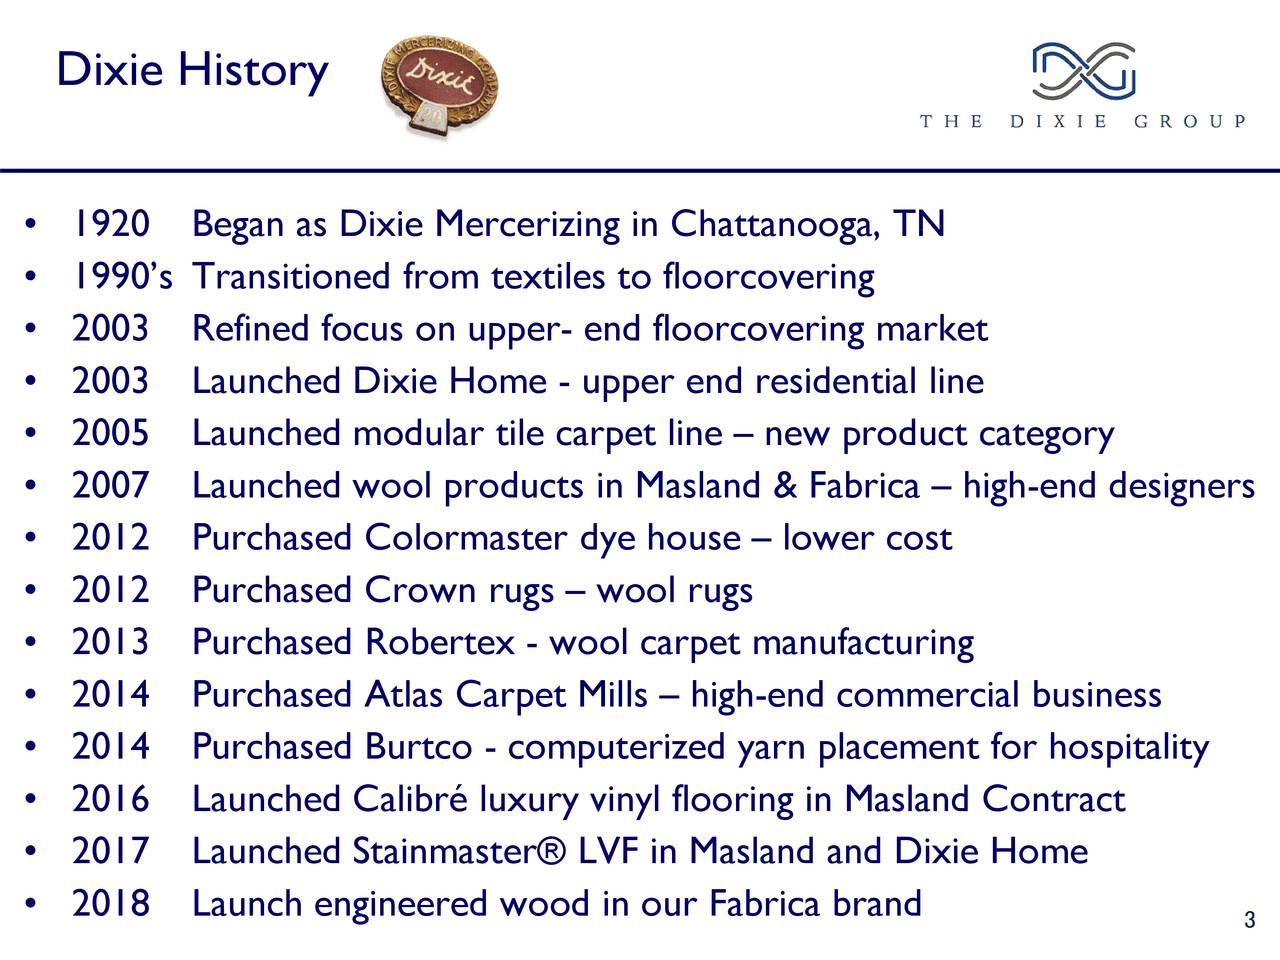 • 1920 Began as Dixie Mercerizing in Chattanooga, TN • 1990's Transitioned from textiles to floorcovering • 2003 Refined focus on upper- end floorcovering market • 2003 Launched Dixie Home - upper end residential line • 2005 Launched modular tile carpet line – new product category • 2007 Launched wool products in Masland & Fabrica – high-end designers • 2012 Purchased Colormaster dye house – lower cost • 2012 Purchased Crown rugs – wool rugs • 2013 Purchased Robertex - wool carpet manufacturing • 2014 Purchased Atlas Carpet Mills – high-end commercial business • 2014 Purchased Burtco - computerized yarn placement for hospitality • 2016 Launched Calibré luxury vinyl flooring in Masland Contract • 2017 Launched Stainmaster® LVF in Masland and Dixie Home • 2018 Launch engineered wood in our Fabrica brand 3